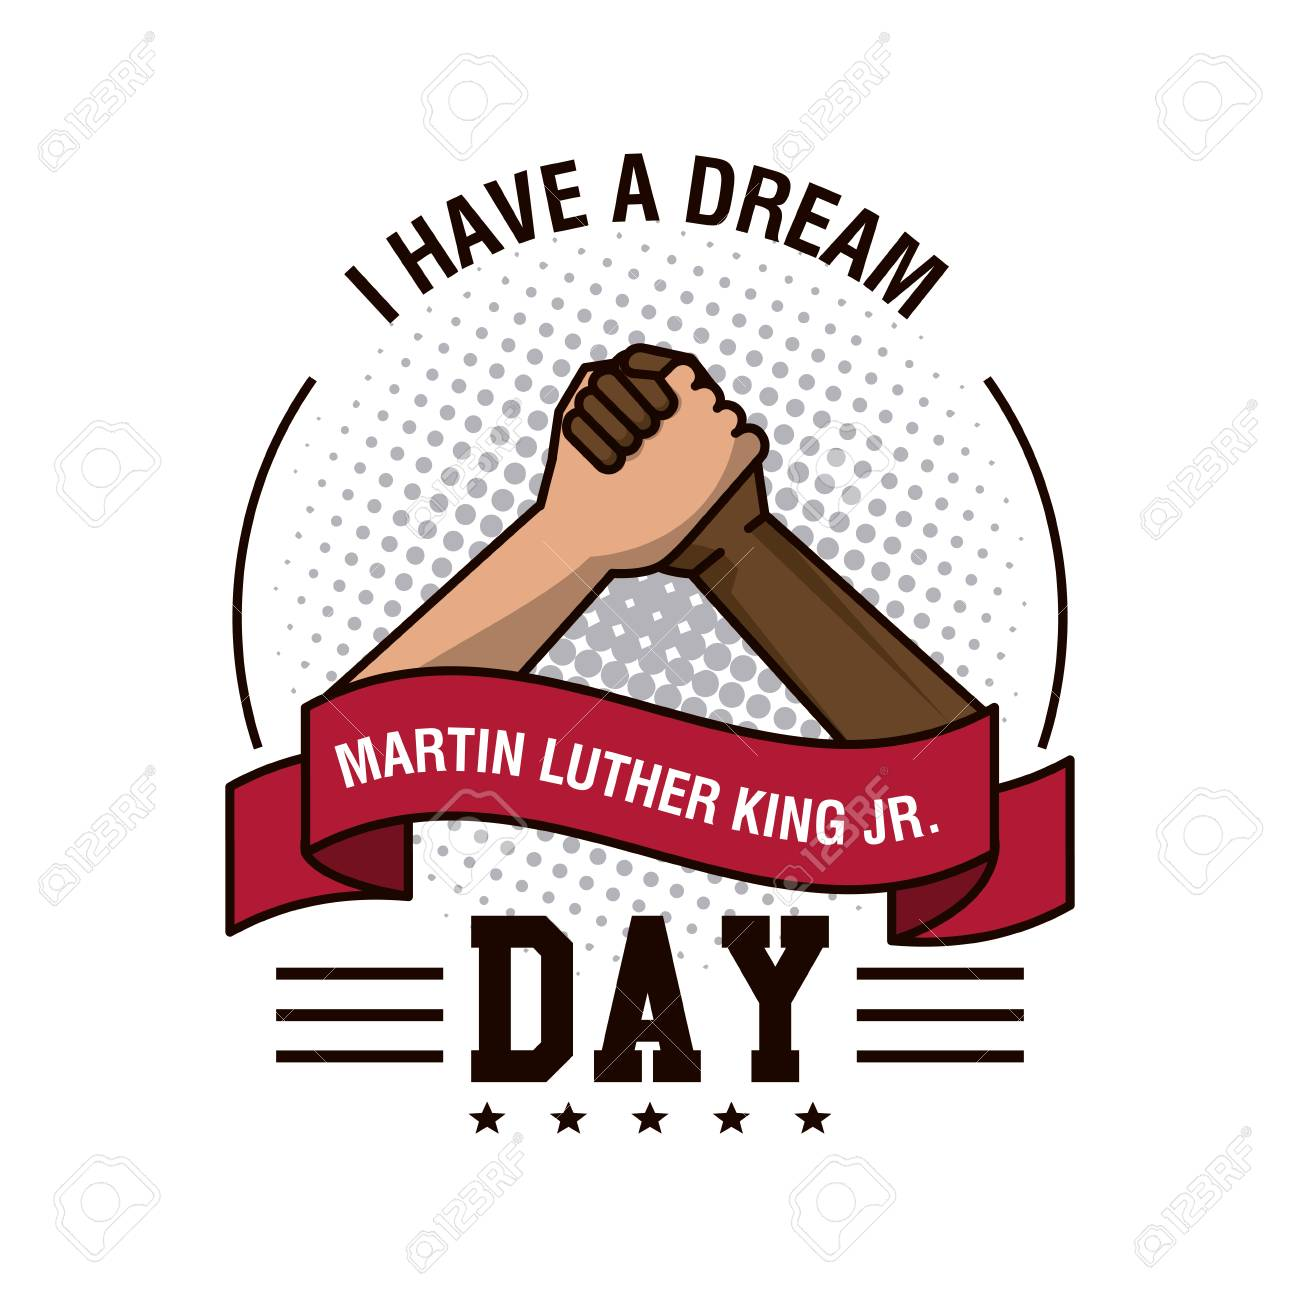 Martin Luther King Day Clipart | Free download on ClipArtMag